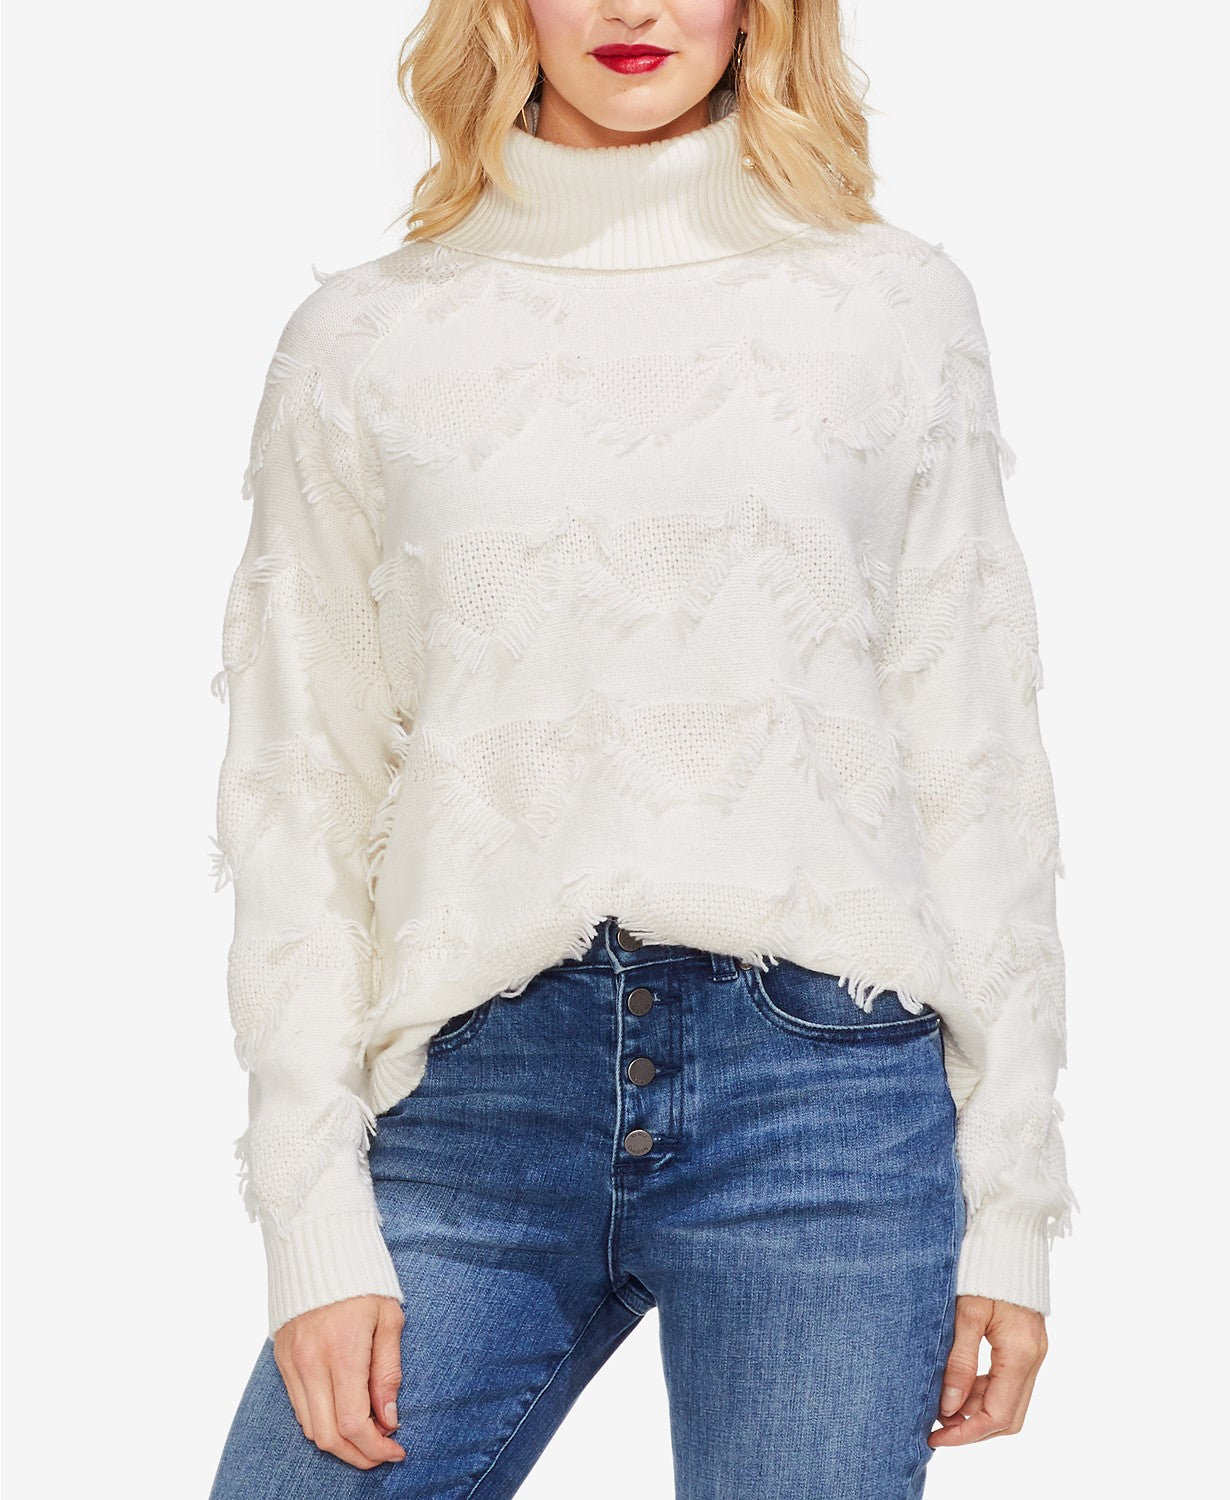 Vince Camuto Geometric-Fringe Turtleneck Sweater